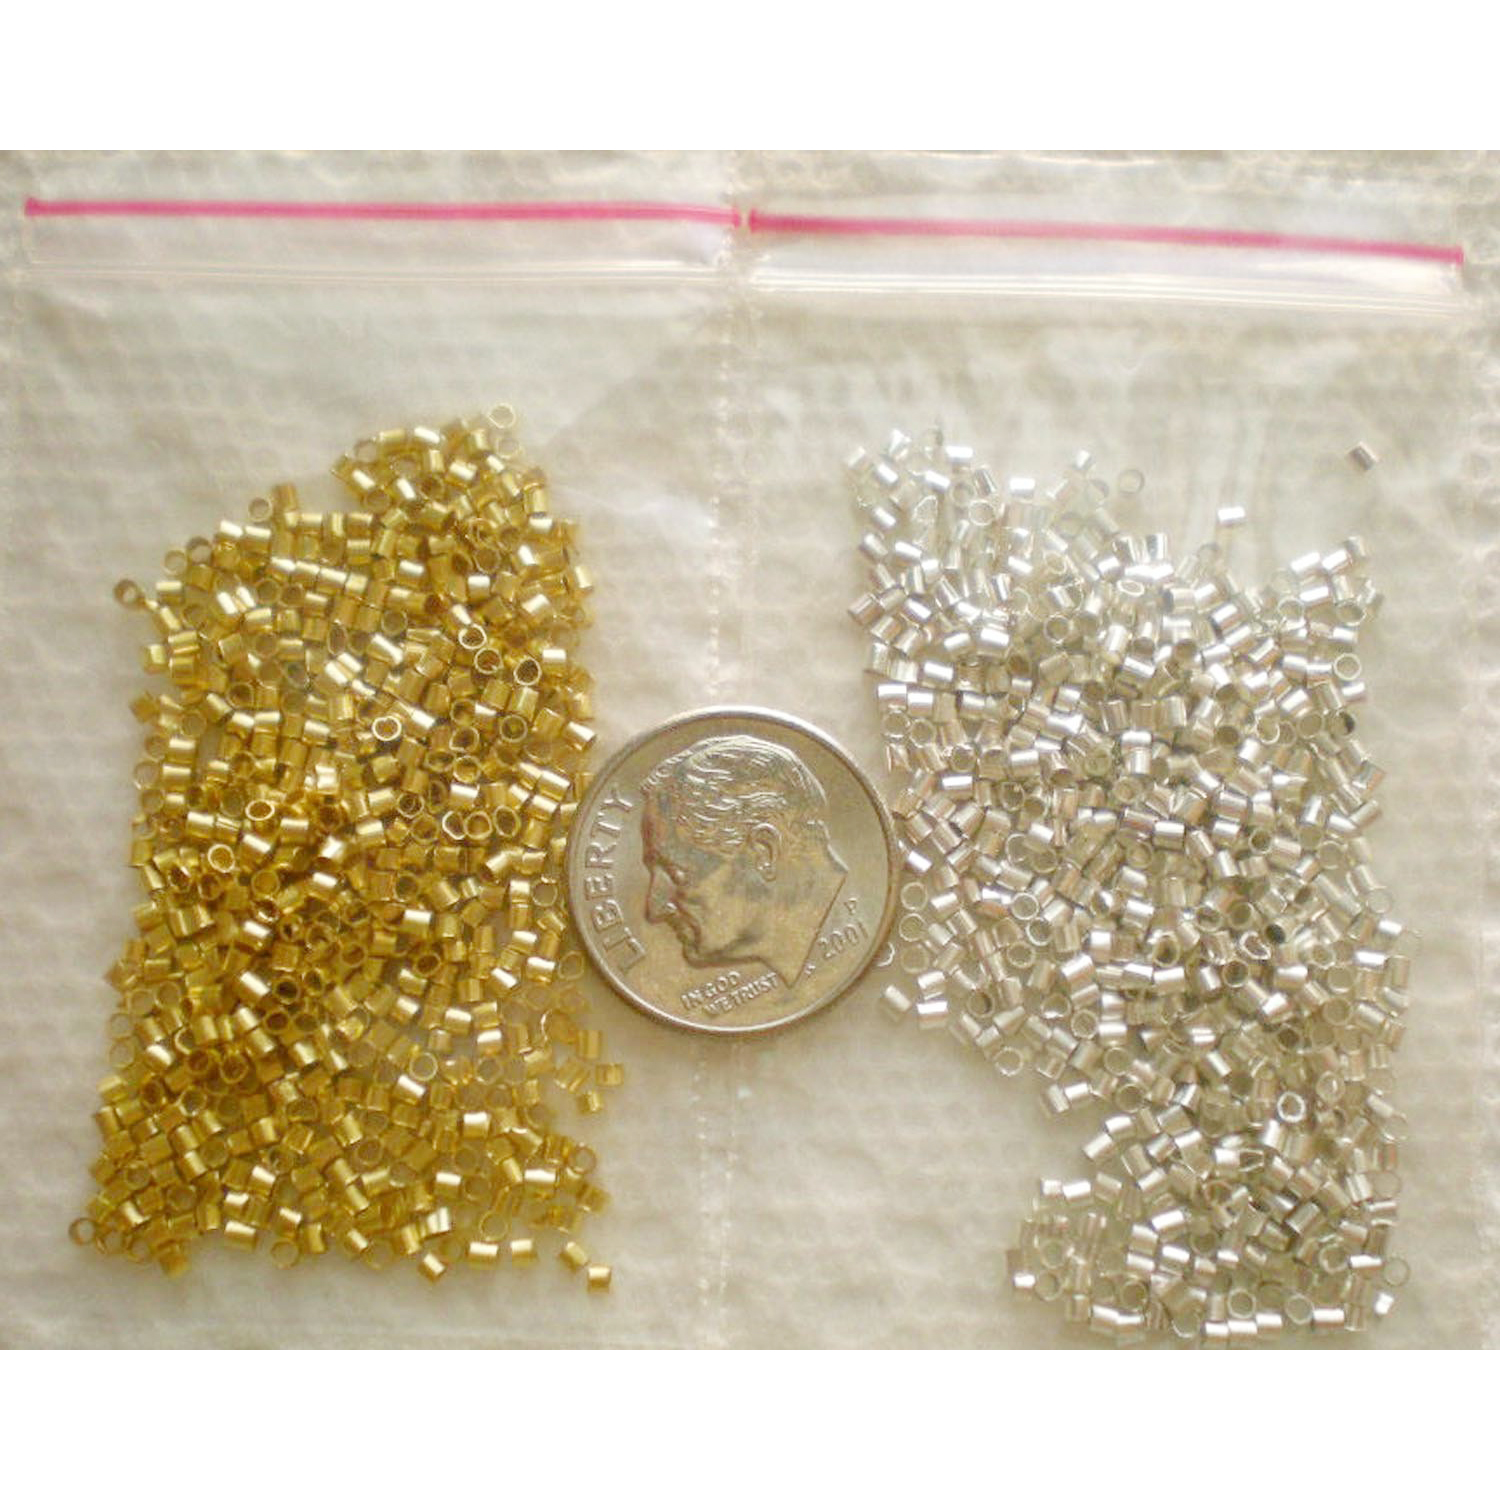 1000 piece mix tube crimp bes for jewelry making for Mixture of gold and silver